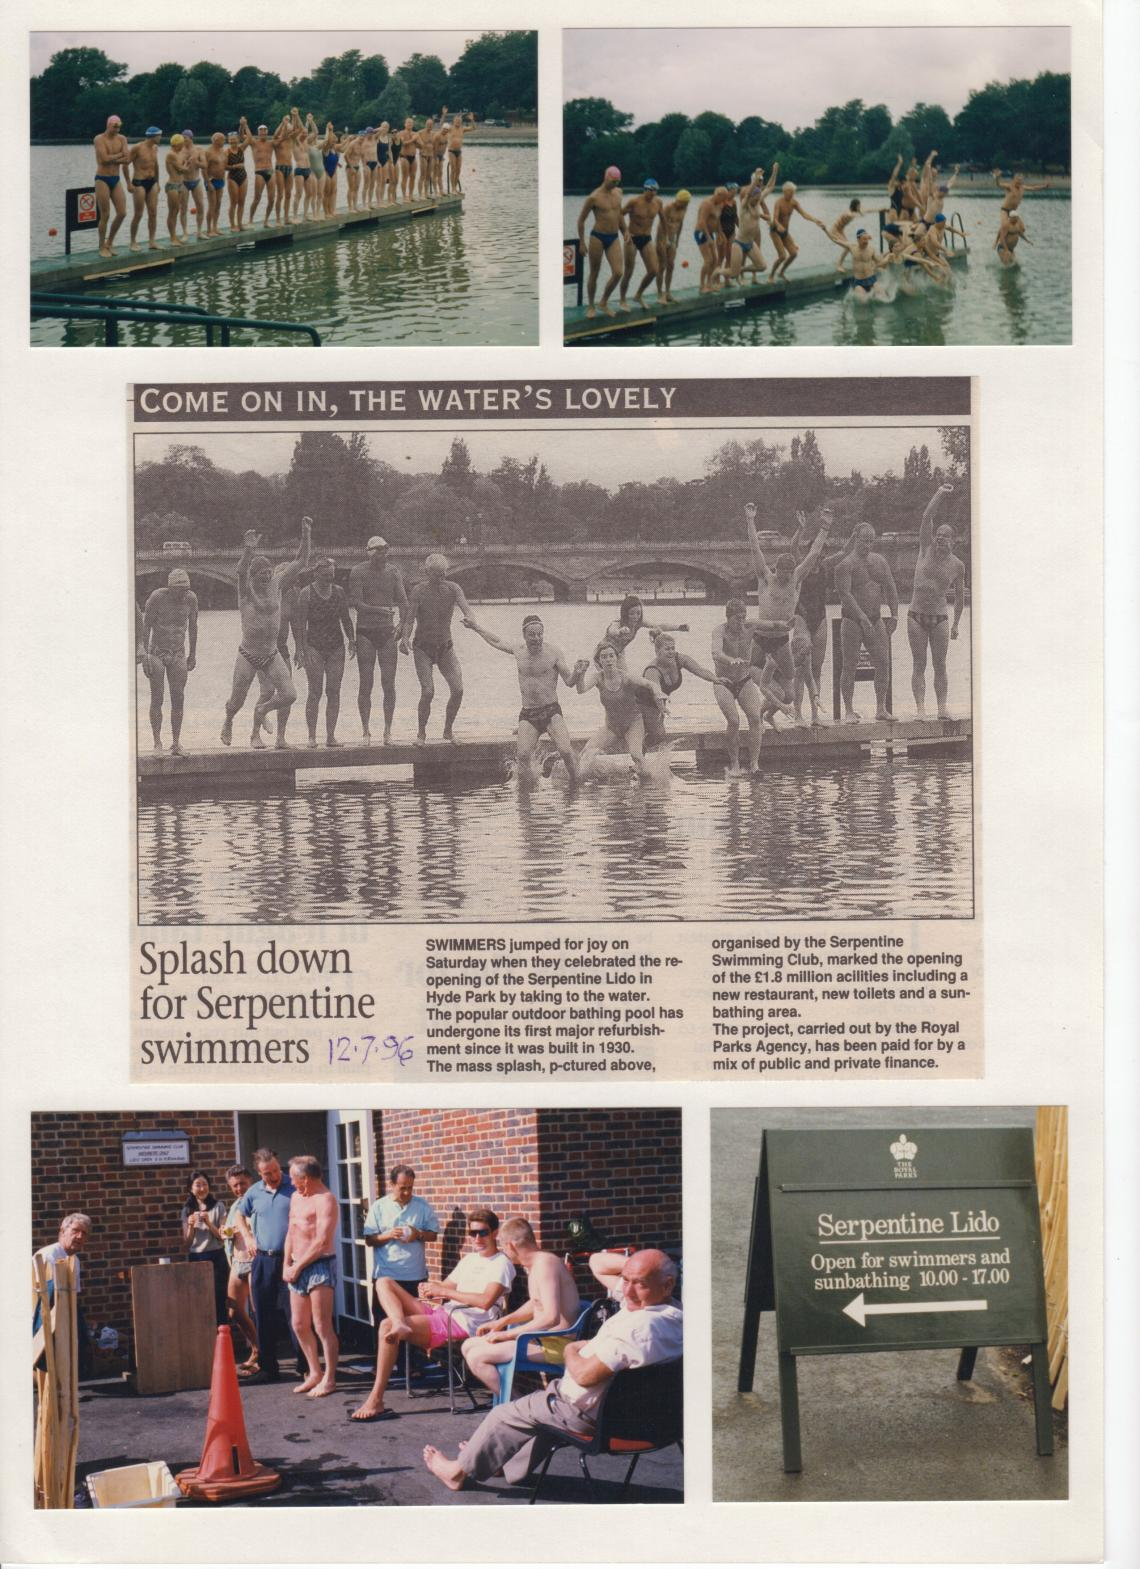 We were able to continue racing, with the Lido eventually reopening to the public in July 1996.